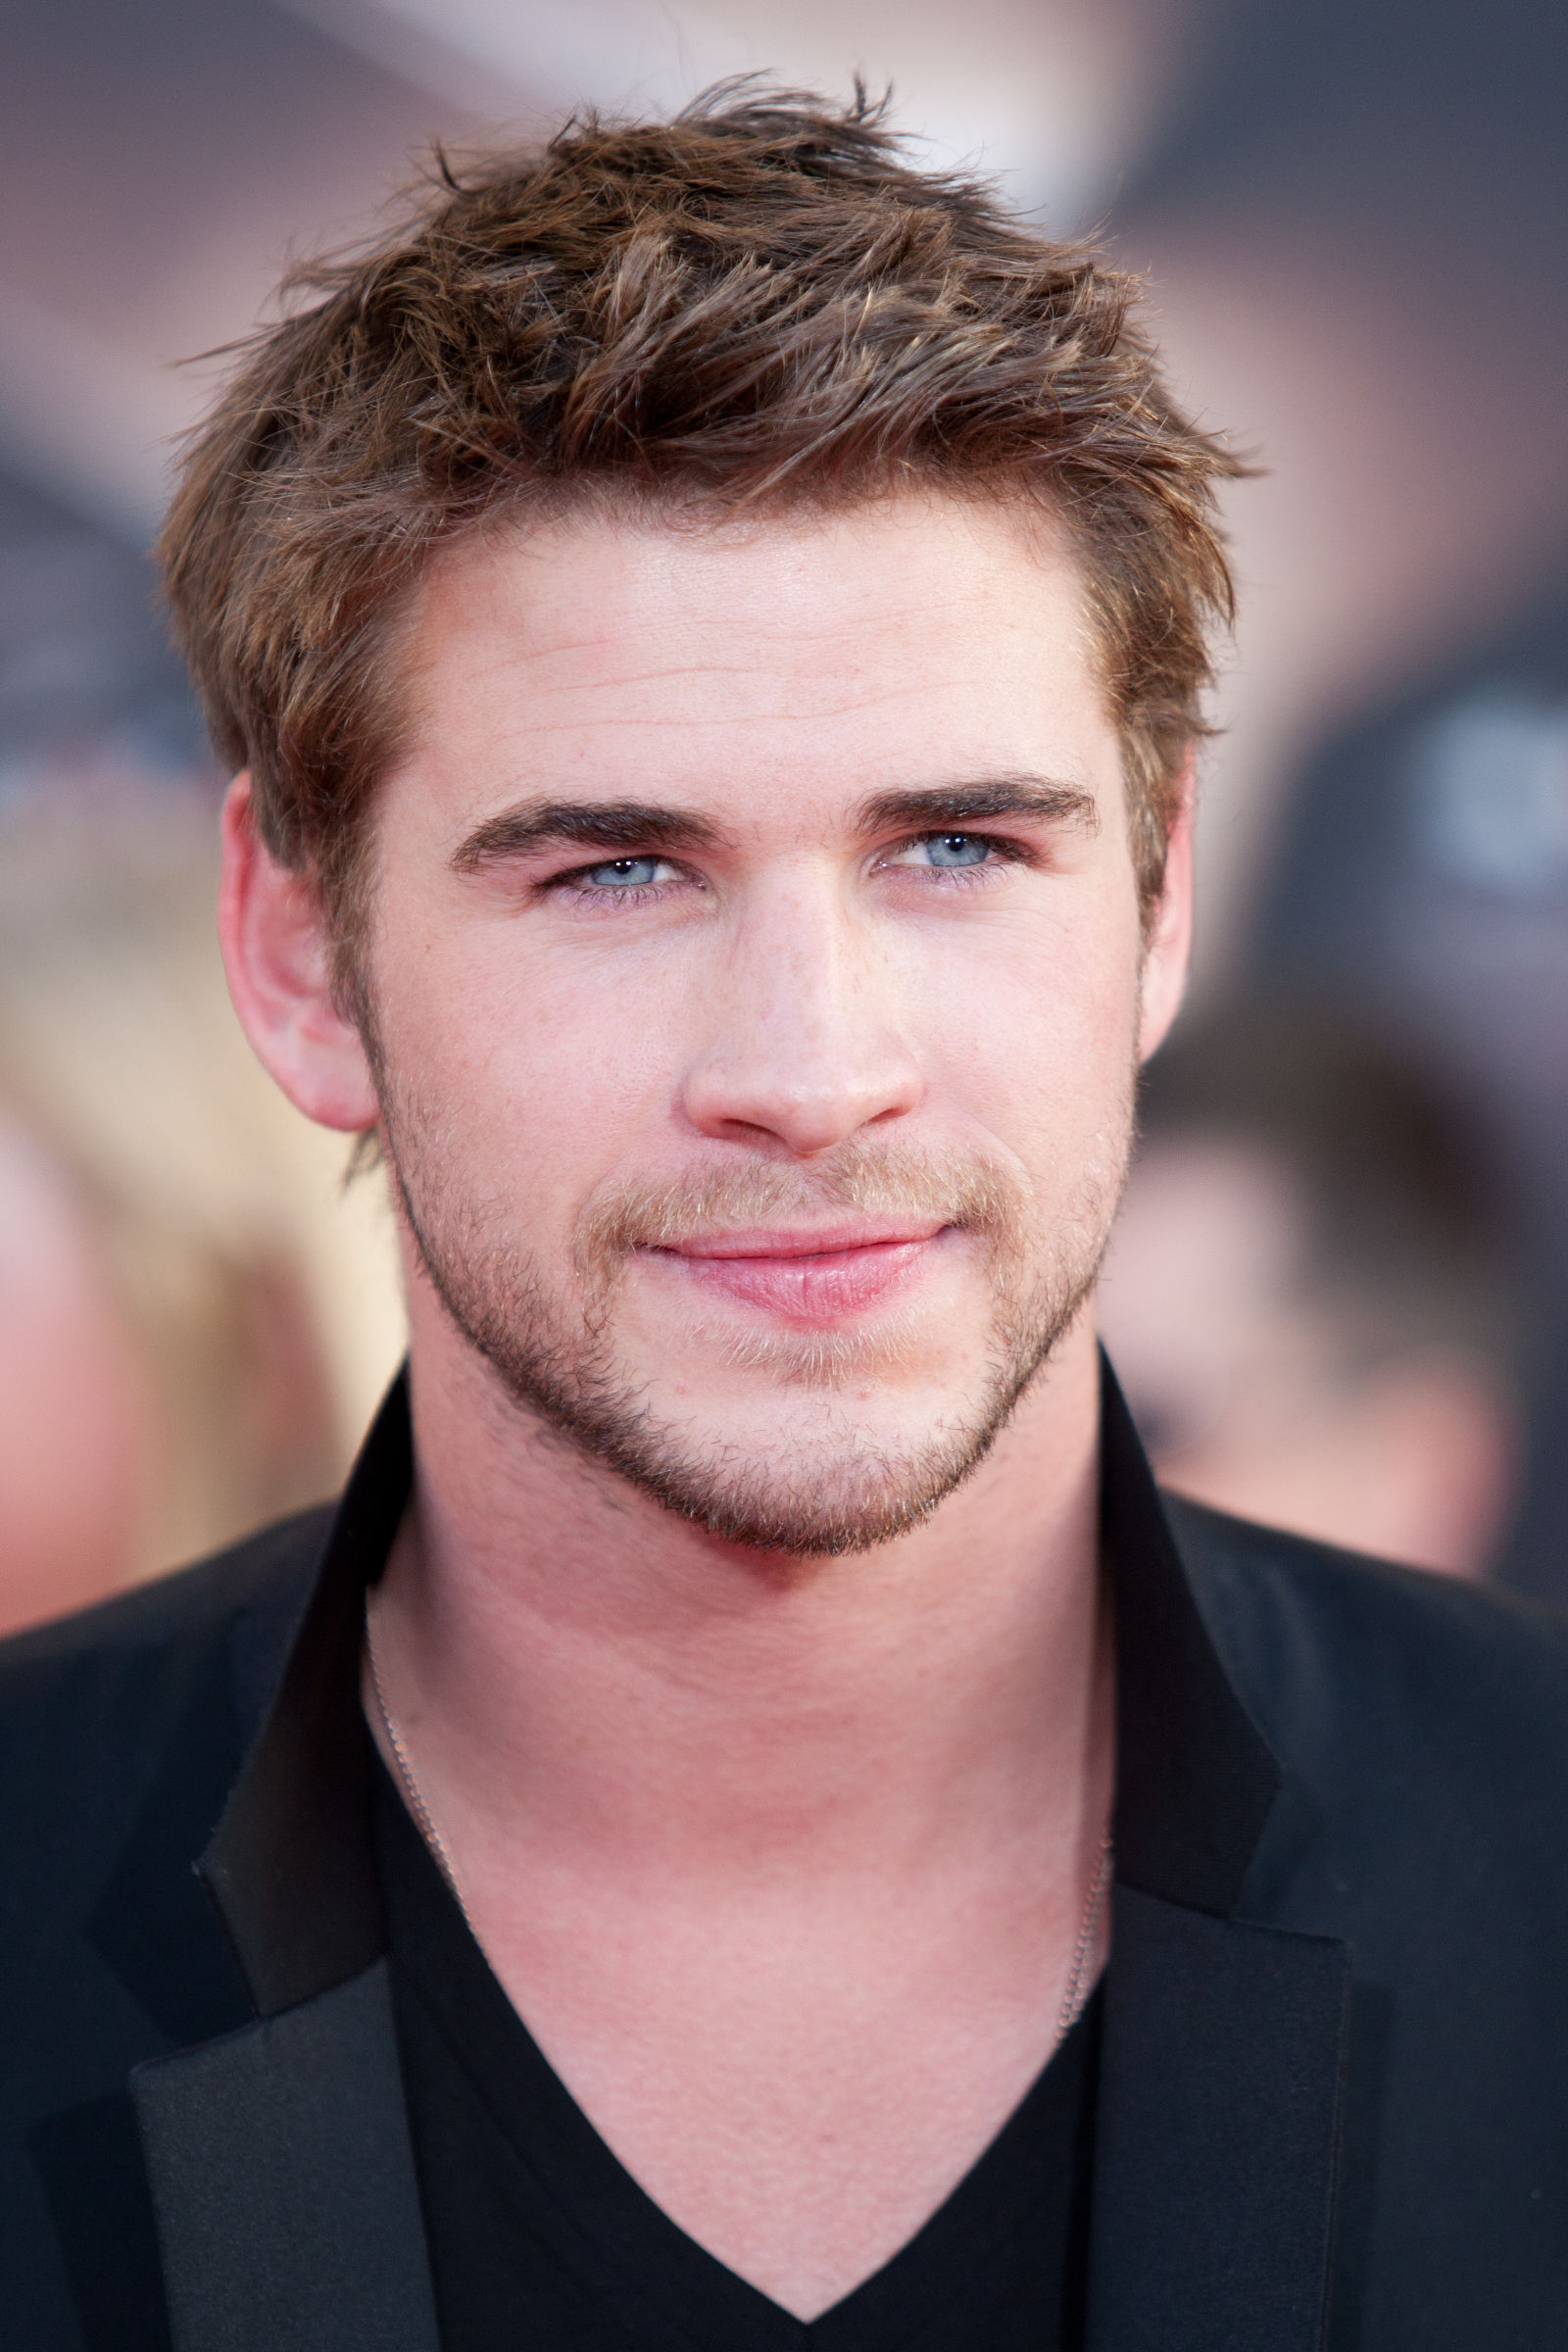 Liam Hemsworth textured spiky tapered haircut